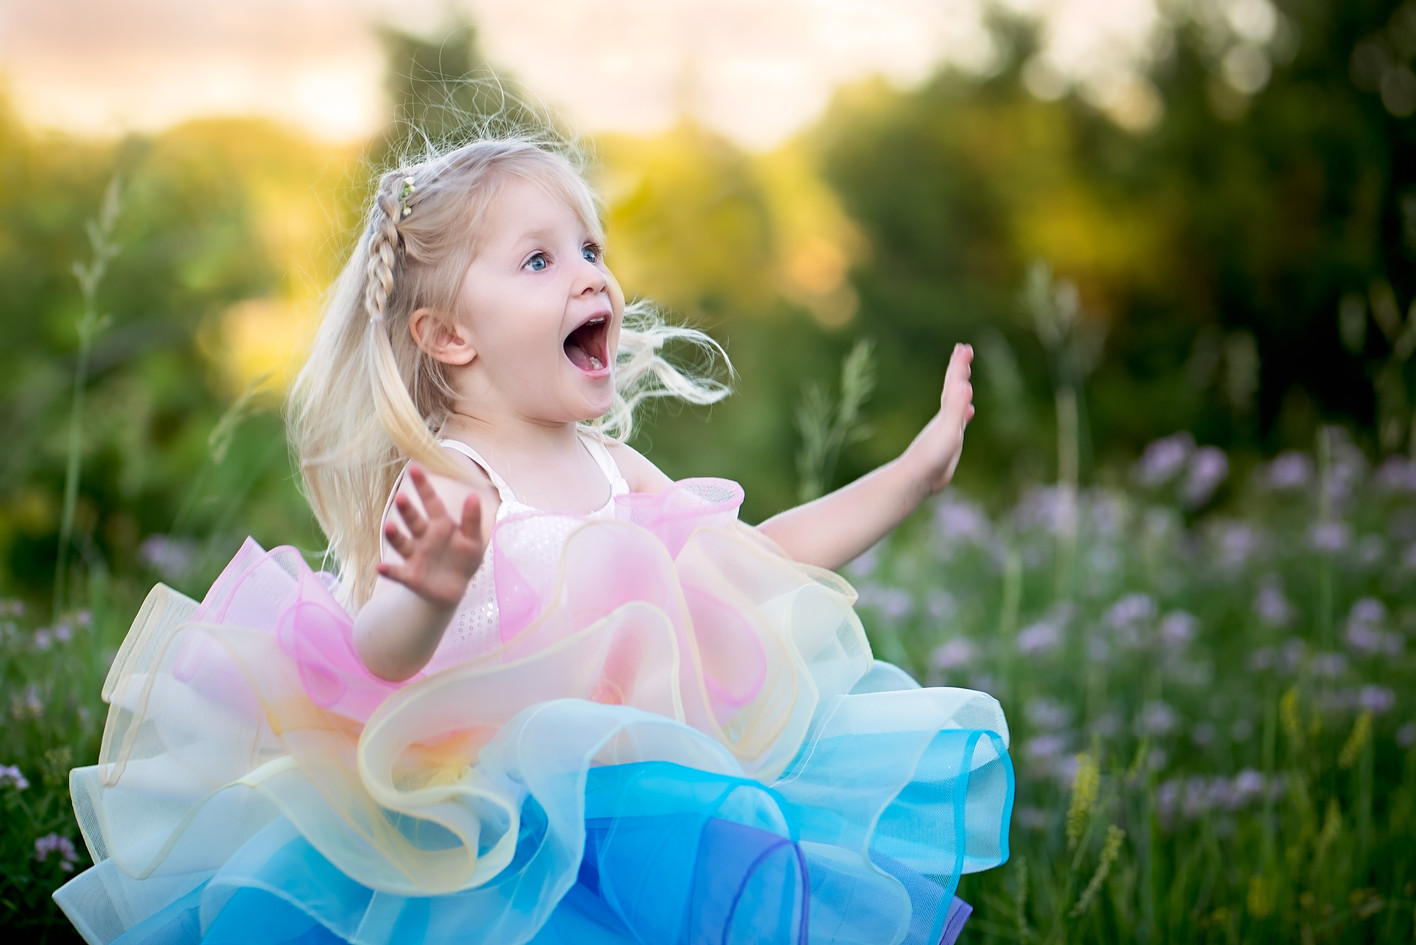 Surprise and Delight of a Child